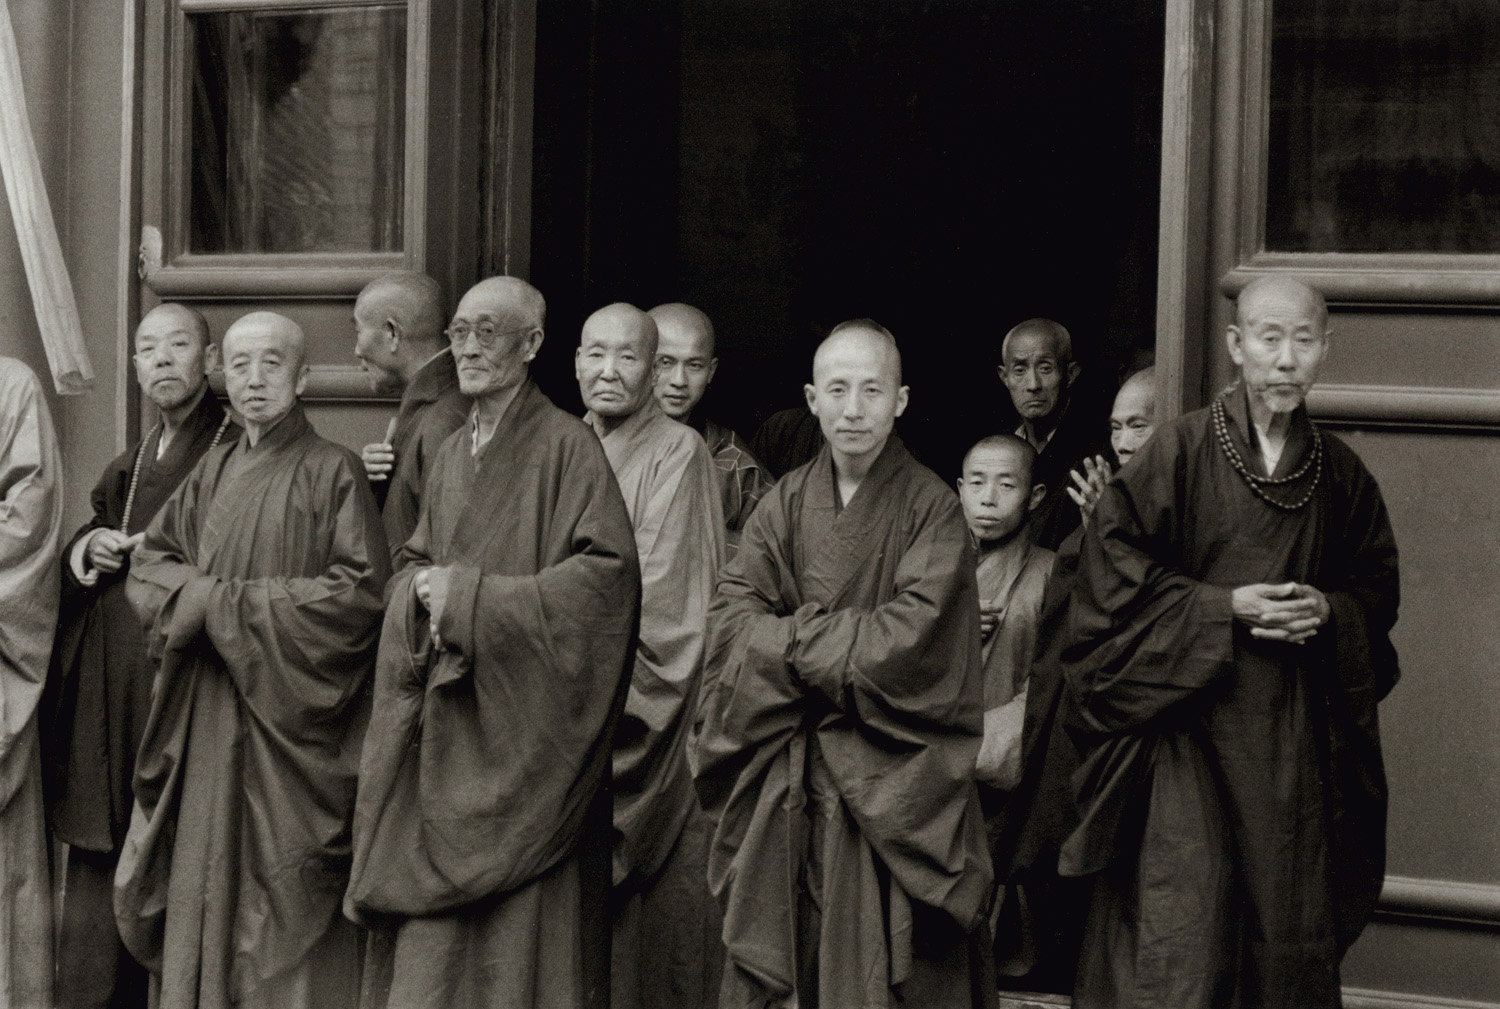 Buddhists outside the doorway of the big Temple, Peking. China, 1956. This was the year of the 2,500th anniversary of the attainment by Buddha of nirvana. (RDH C24-20)